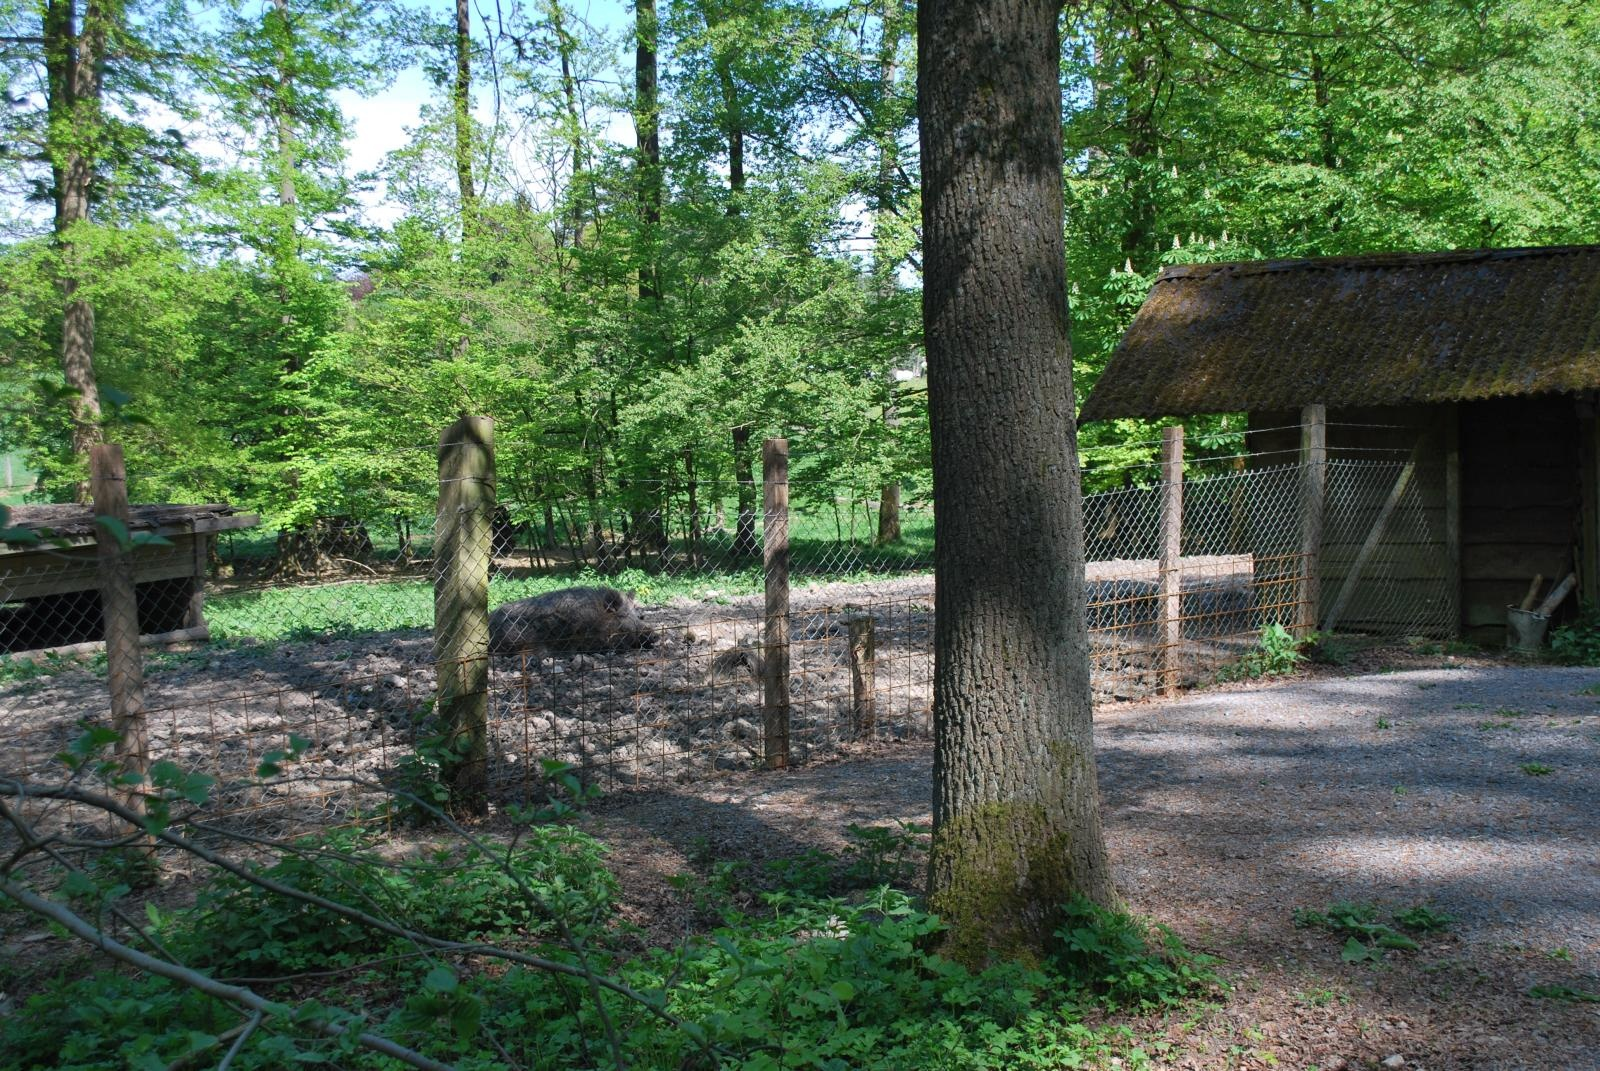 Wildgehege in Willebadessen